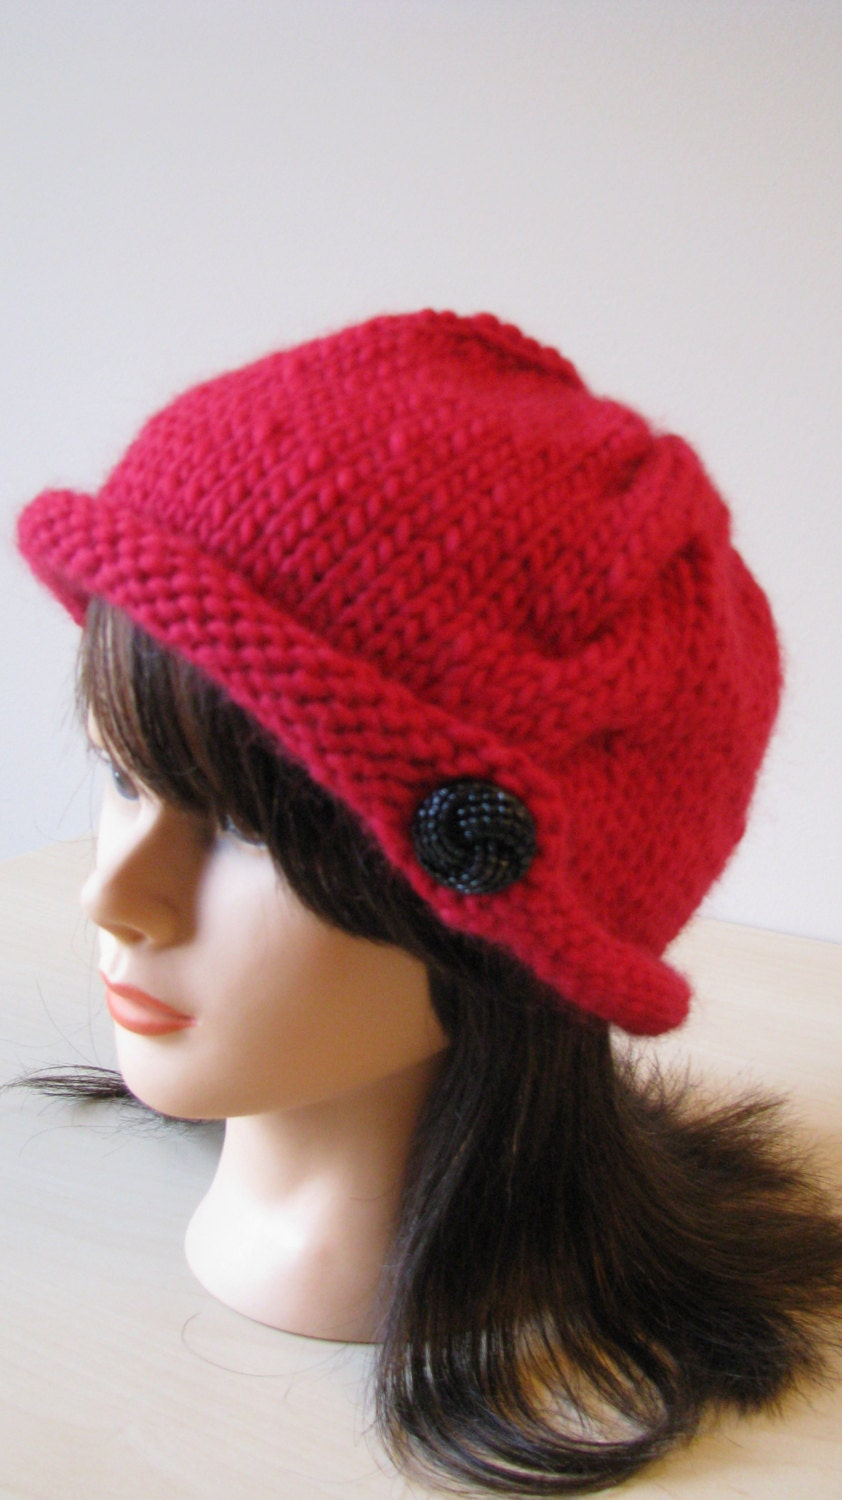 Knitting Patterns For Winter Hats : Knitting Pattern Womens winter hat Rachel